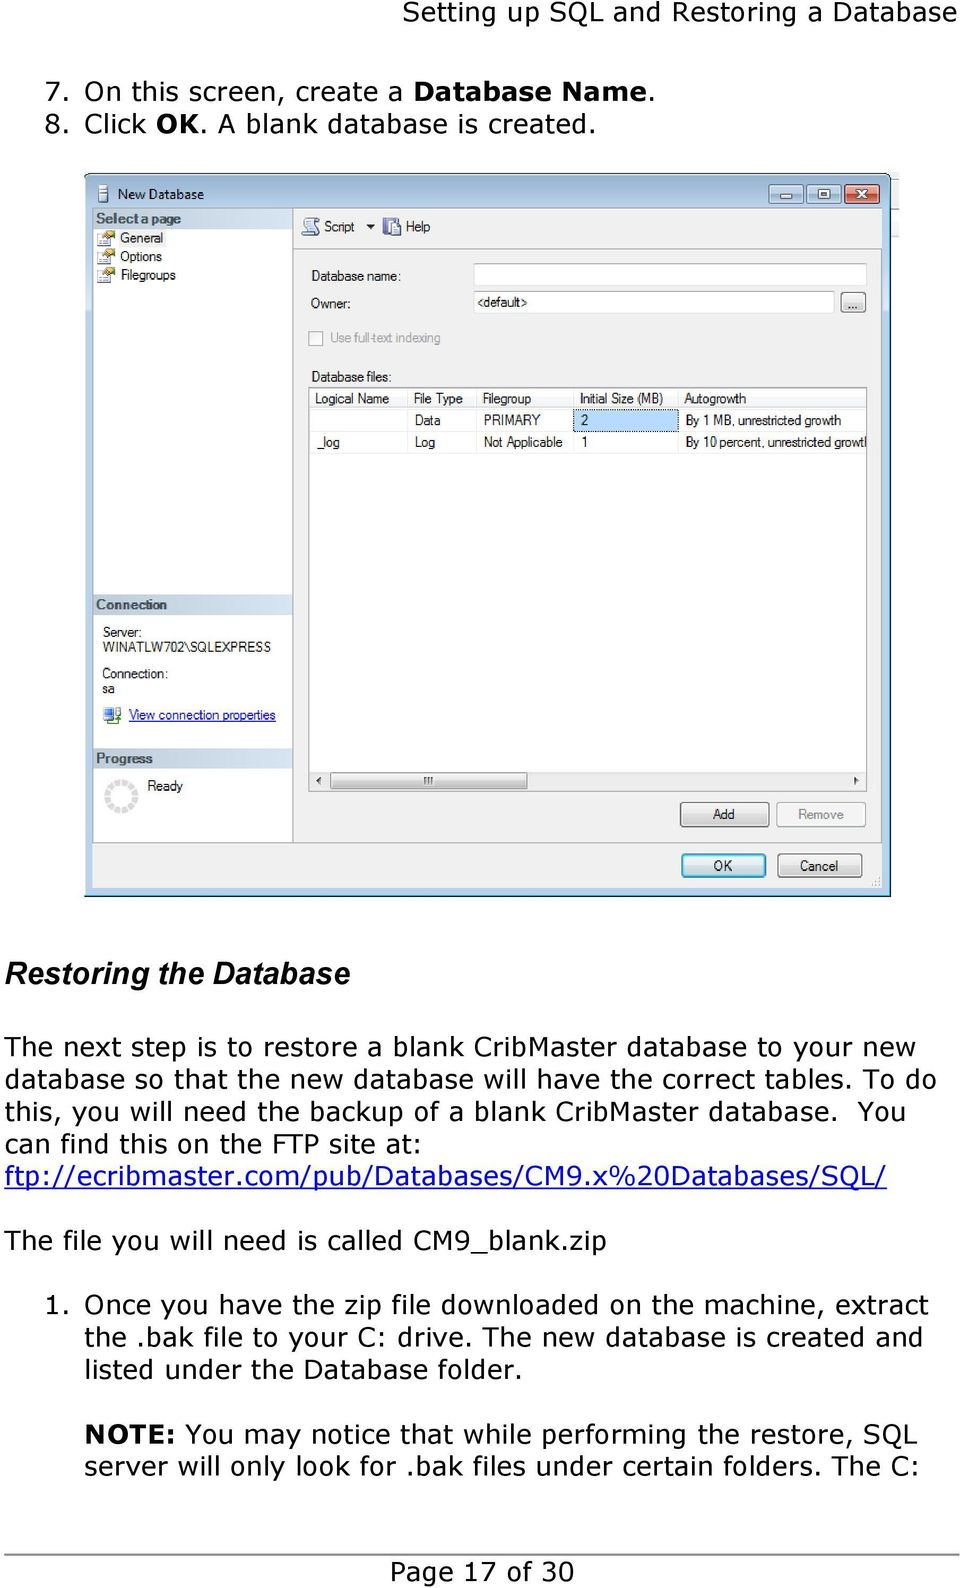 To do this, you will need the backup of a blank CribMaster database. You can find this on the FTP site at: ftp://ecribmaster.com/pub/databases/cm9.